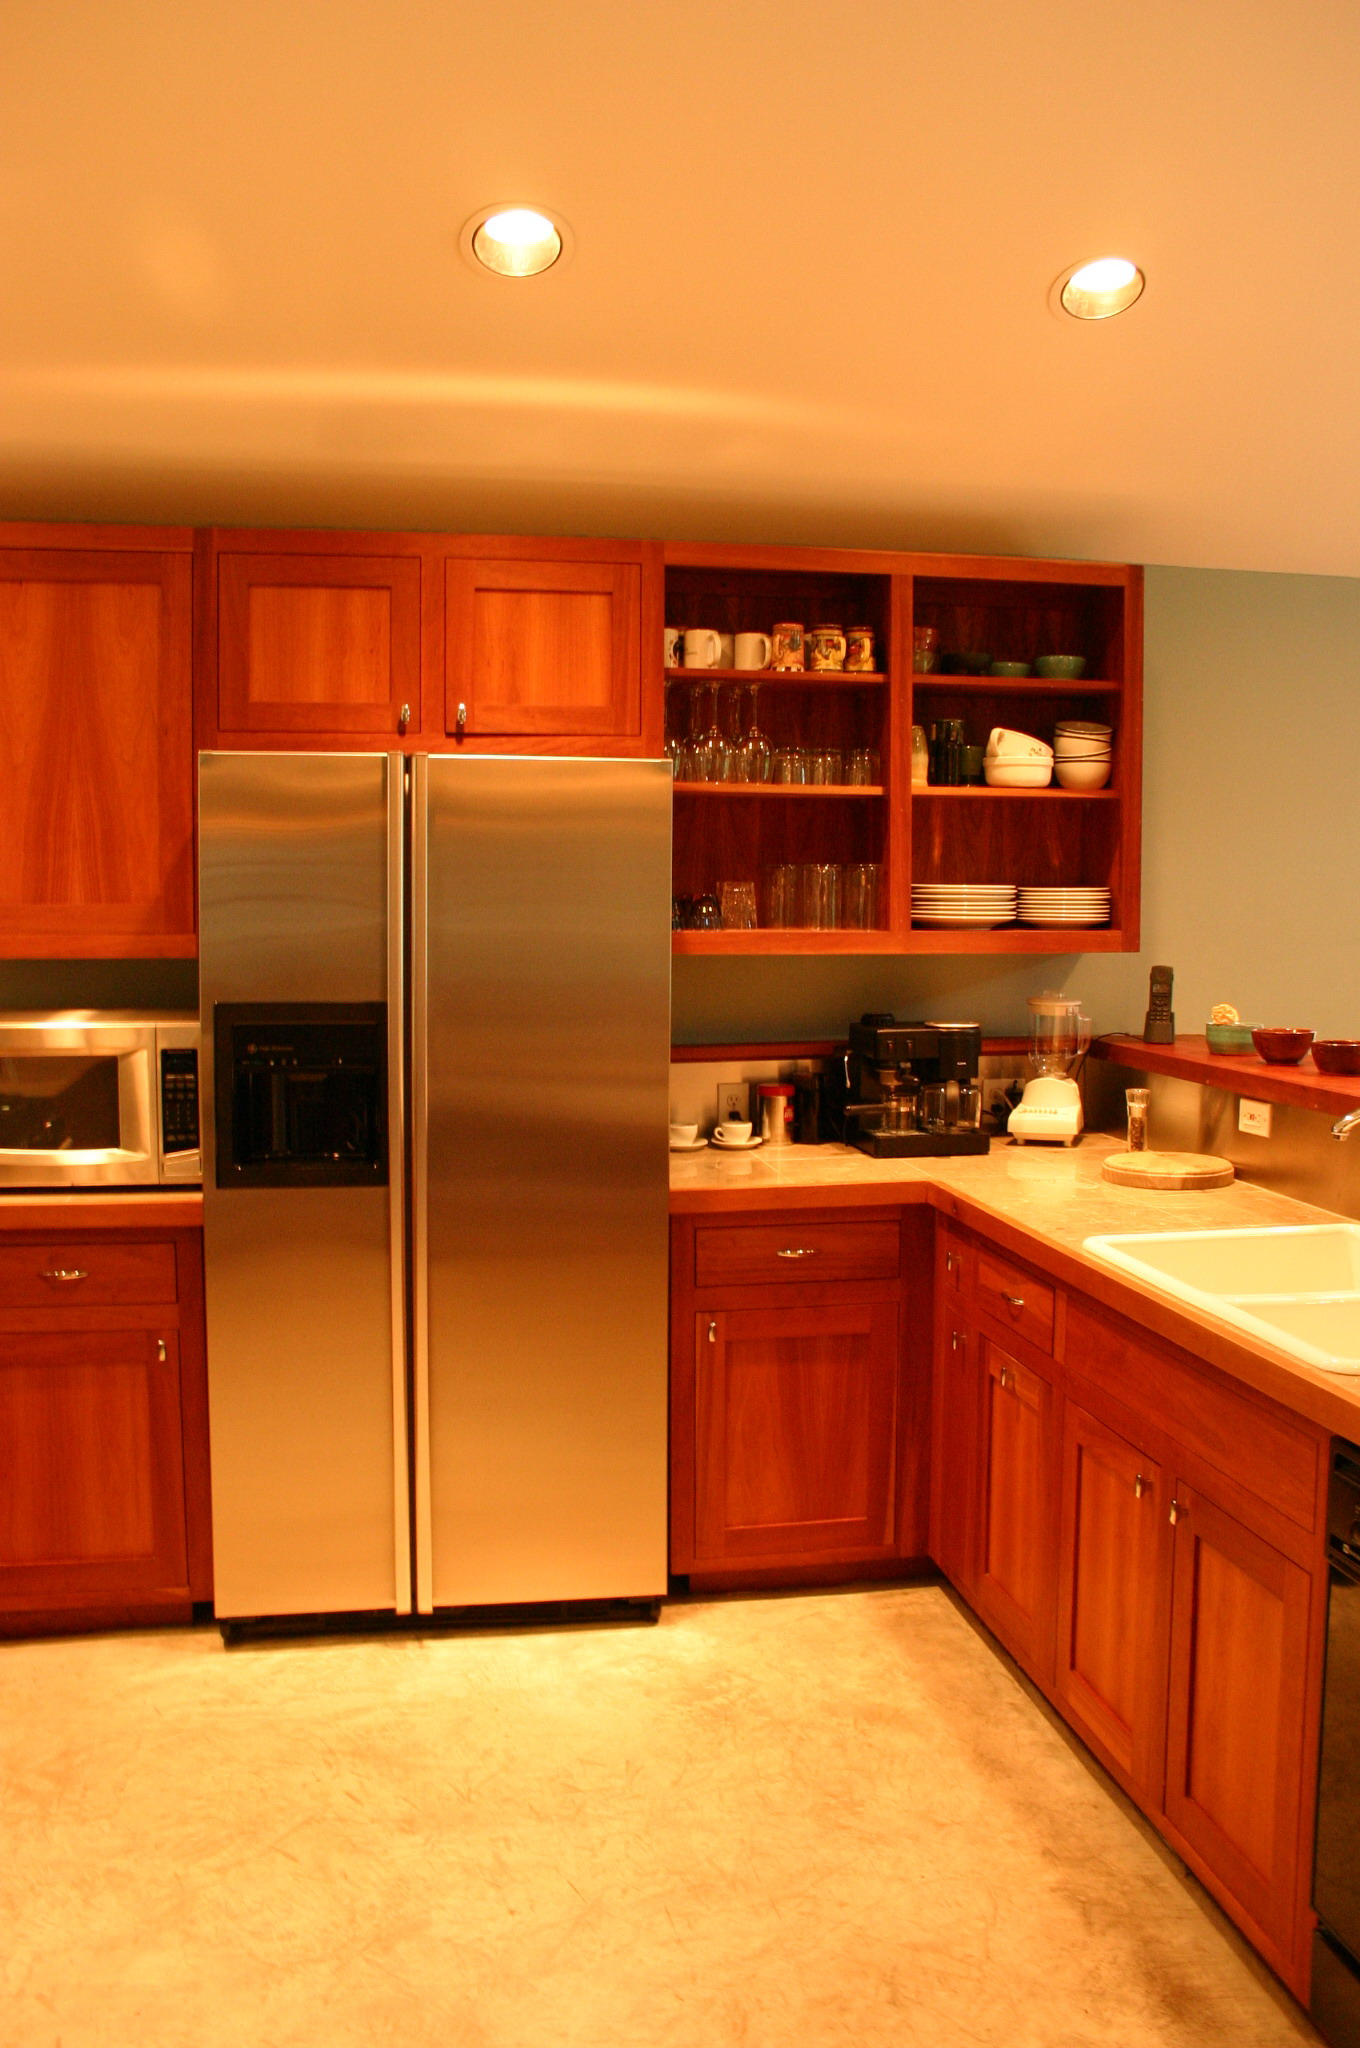 tables and kitchen 015.jpg